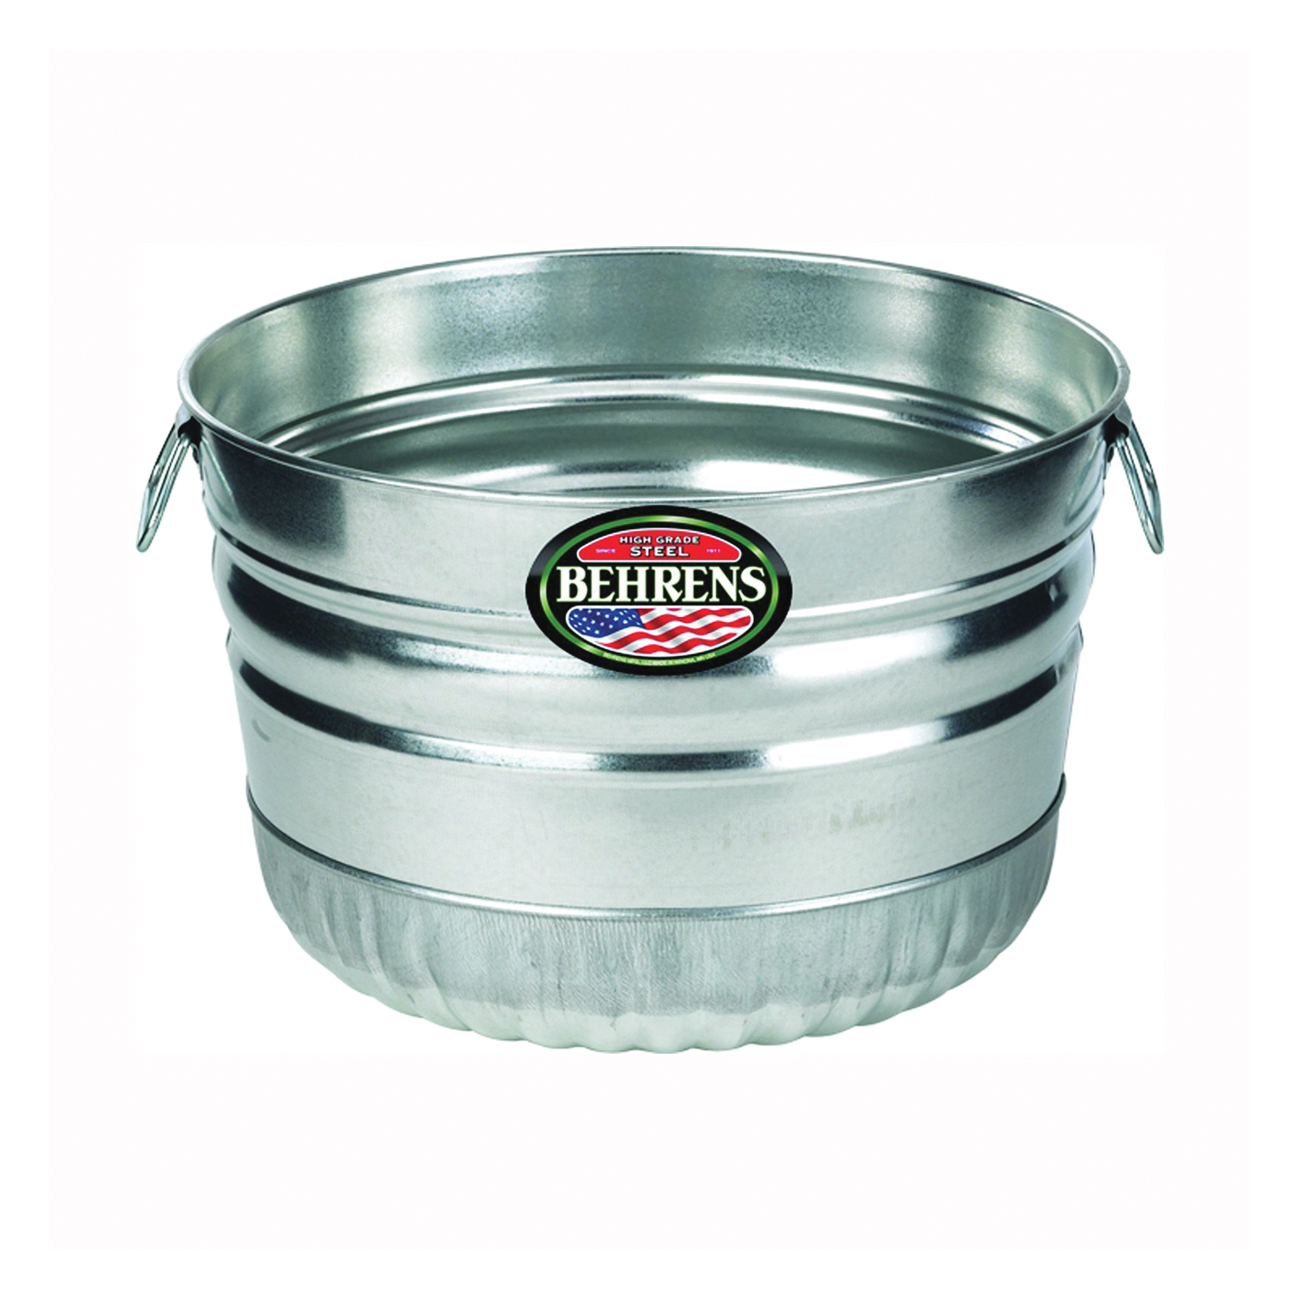 Picture of Behrens 32S Utility Basket, 1 bu Capacity, Galvanized Steel